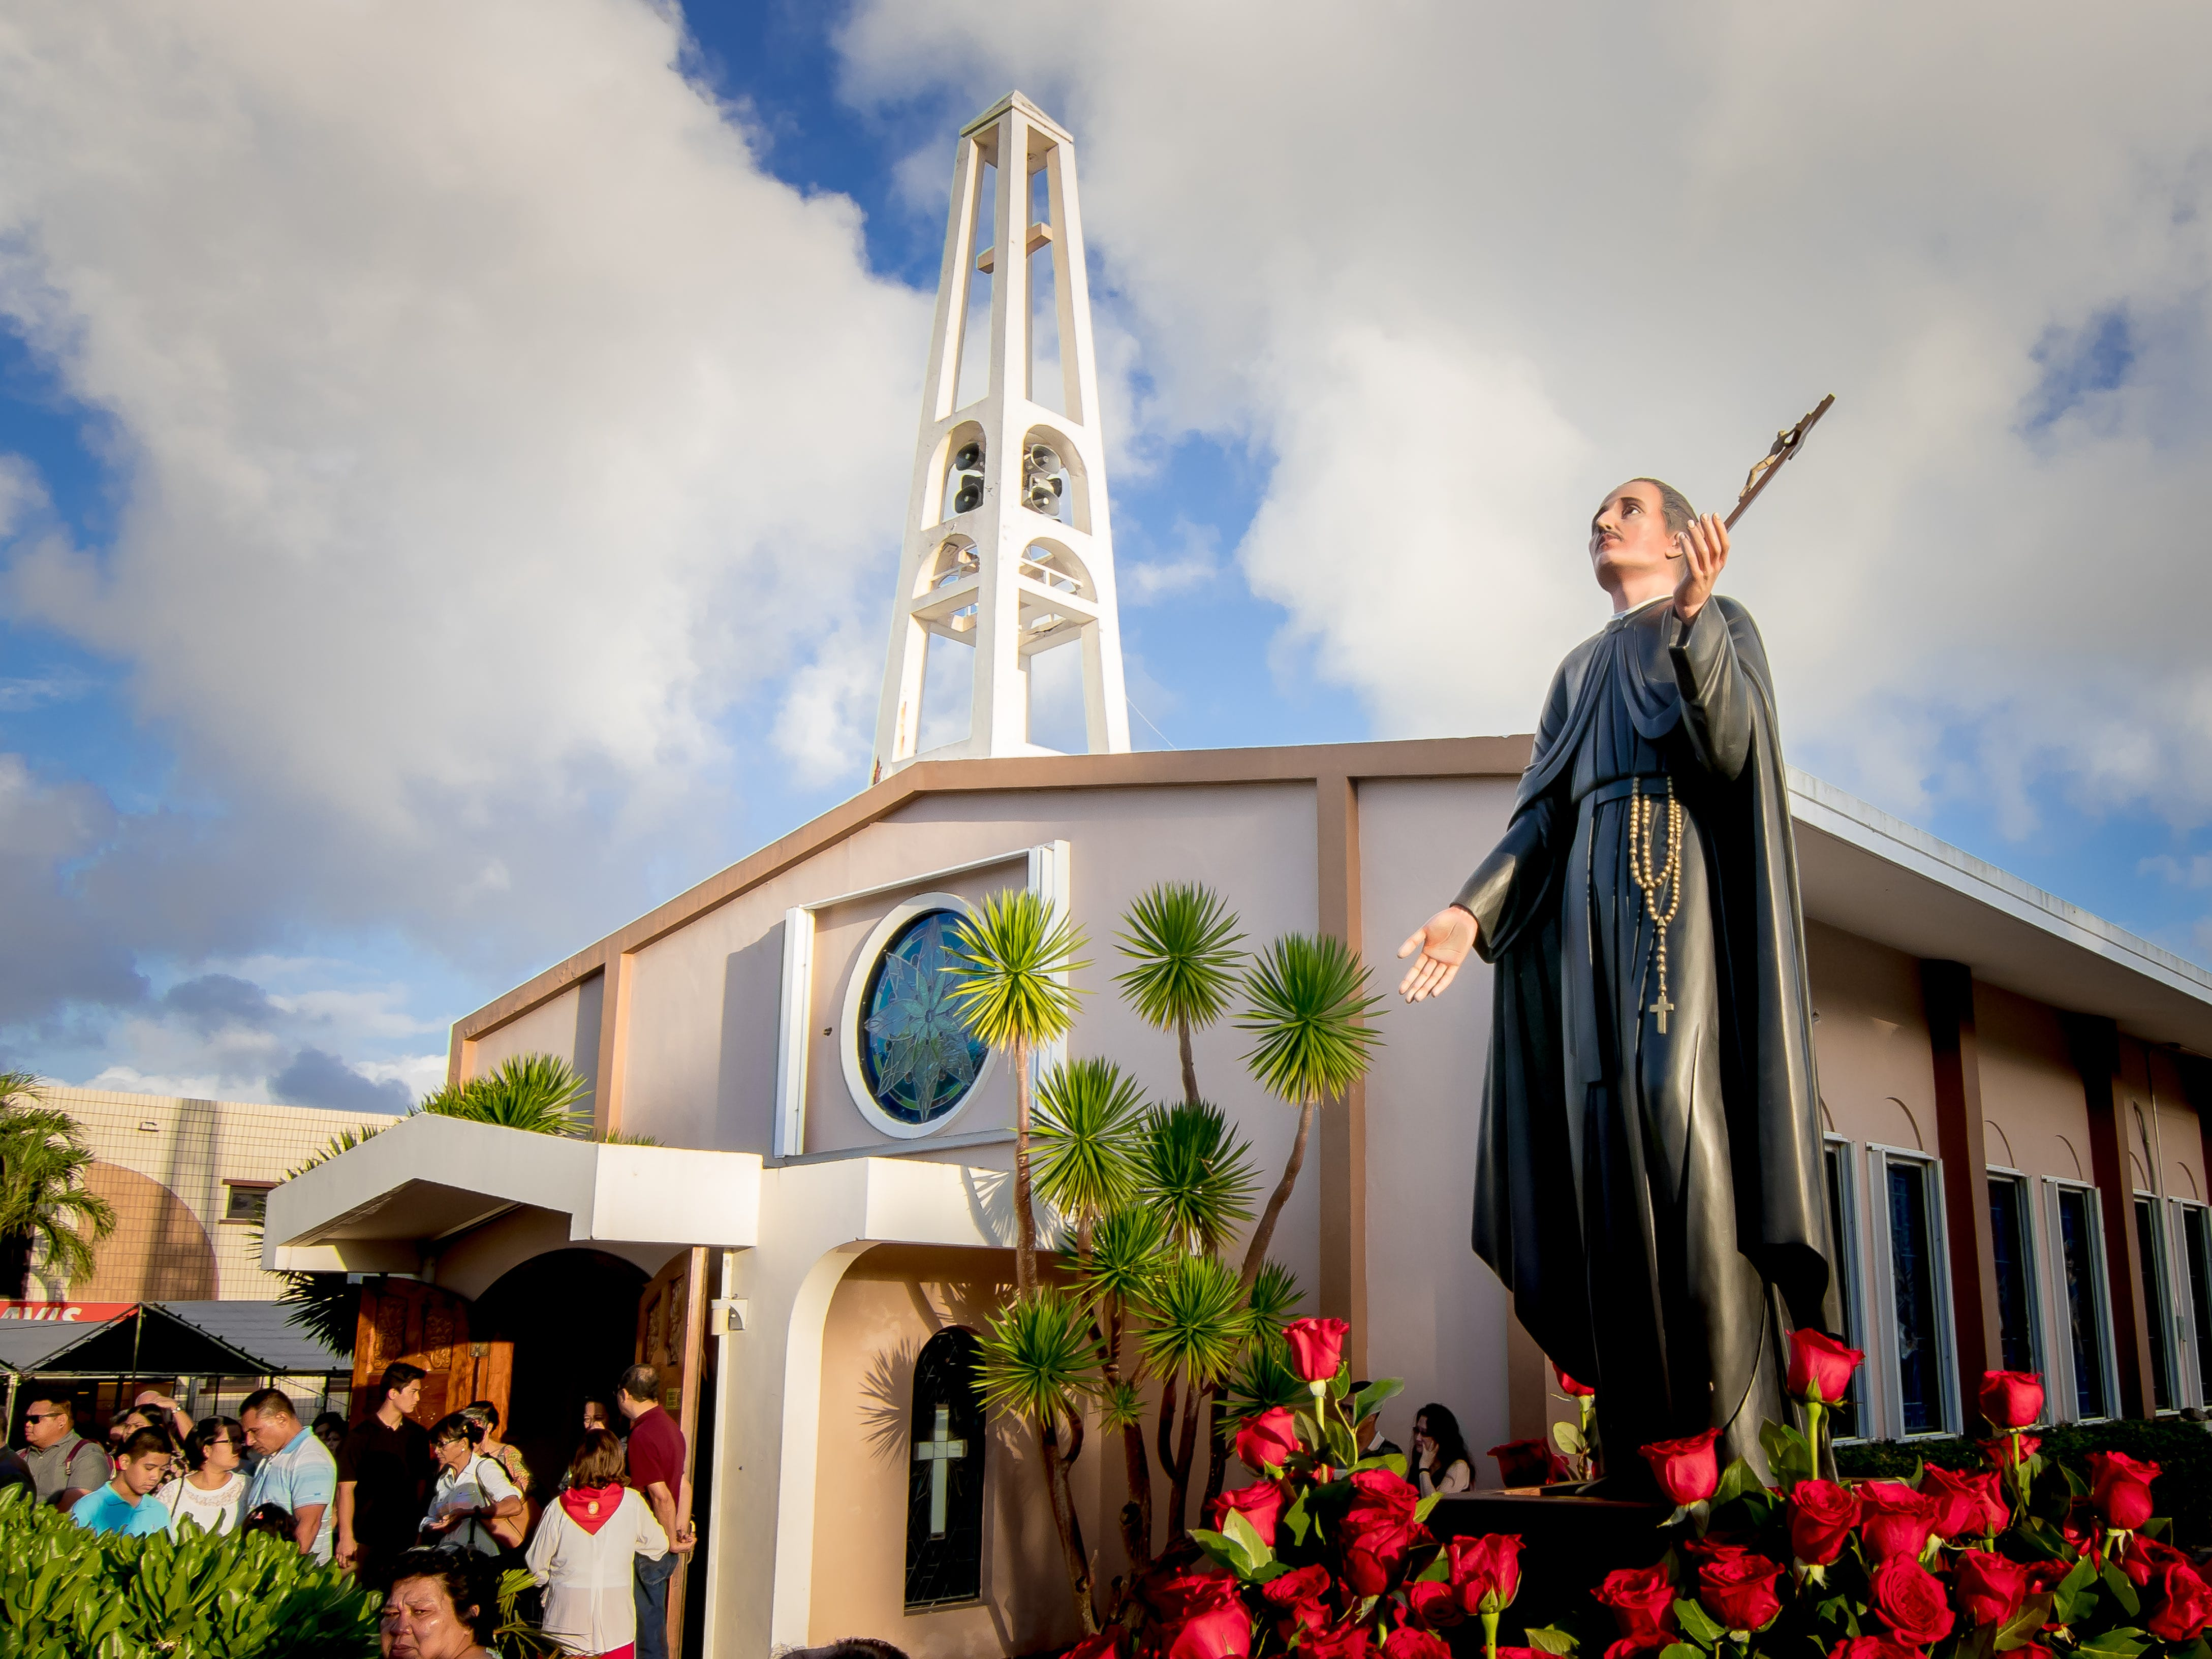 Faithful Catholics attend the procession of the statue of Blessed Diego Luis de San Vitores during the Celebration of Feast of San Vitores in Tumon on Jan. 12.